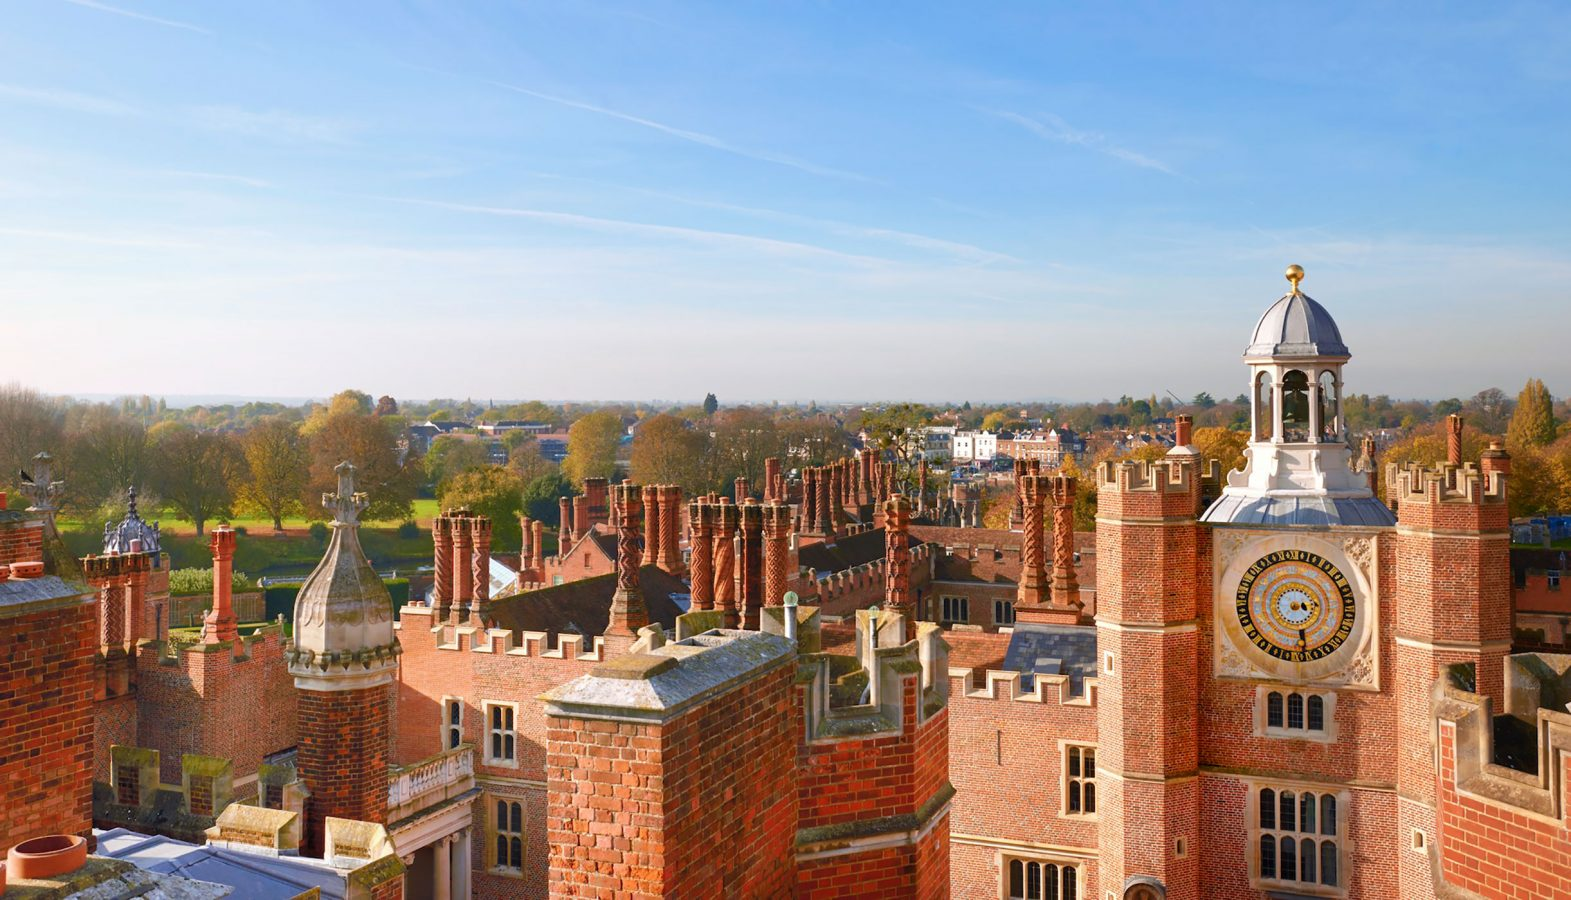 Hampton Court Palace from the roof